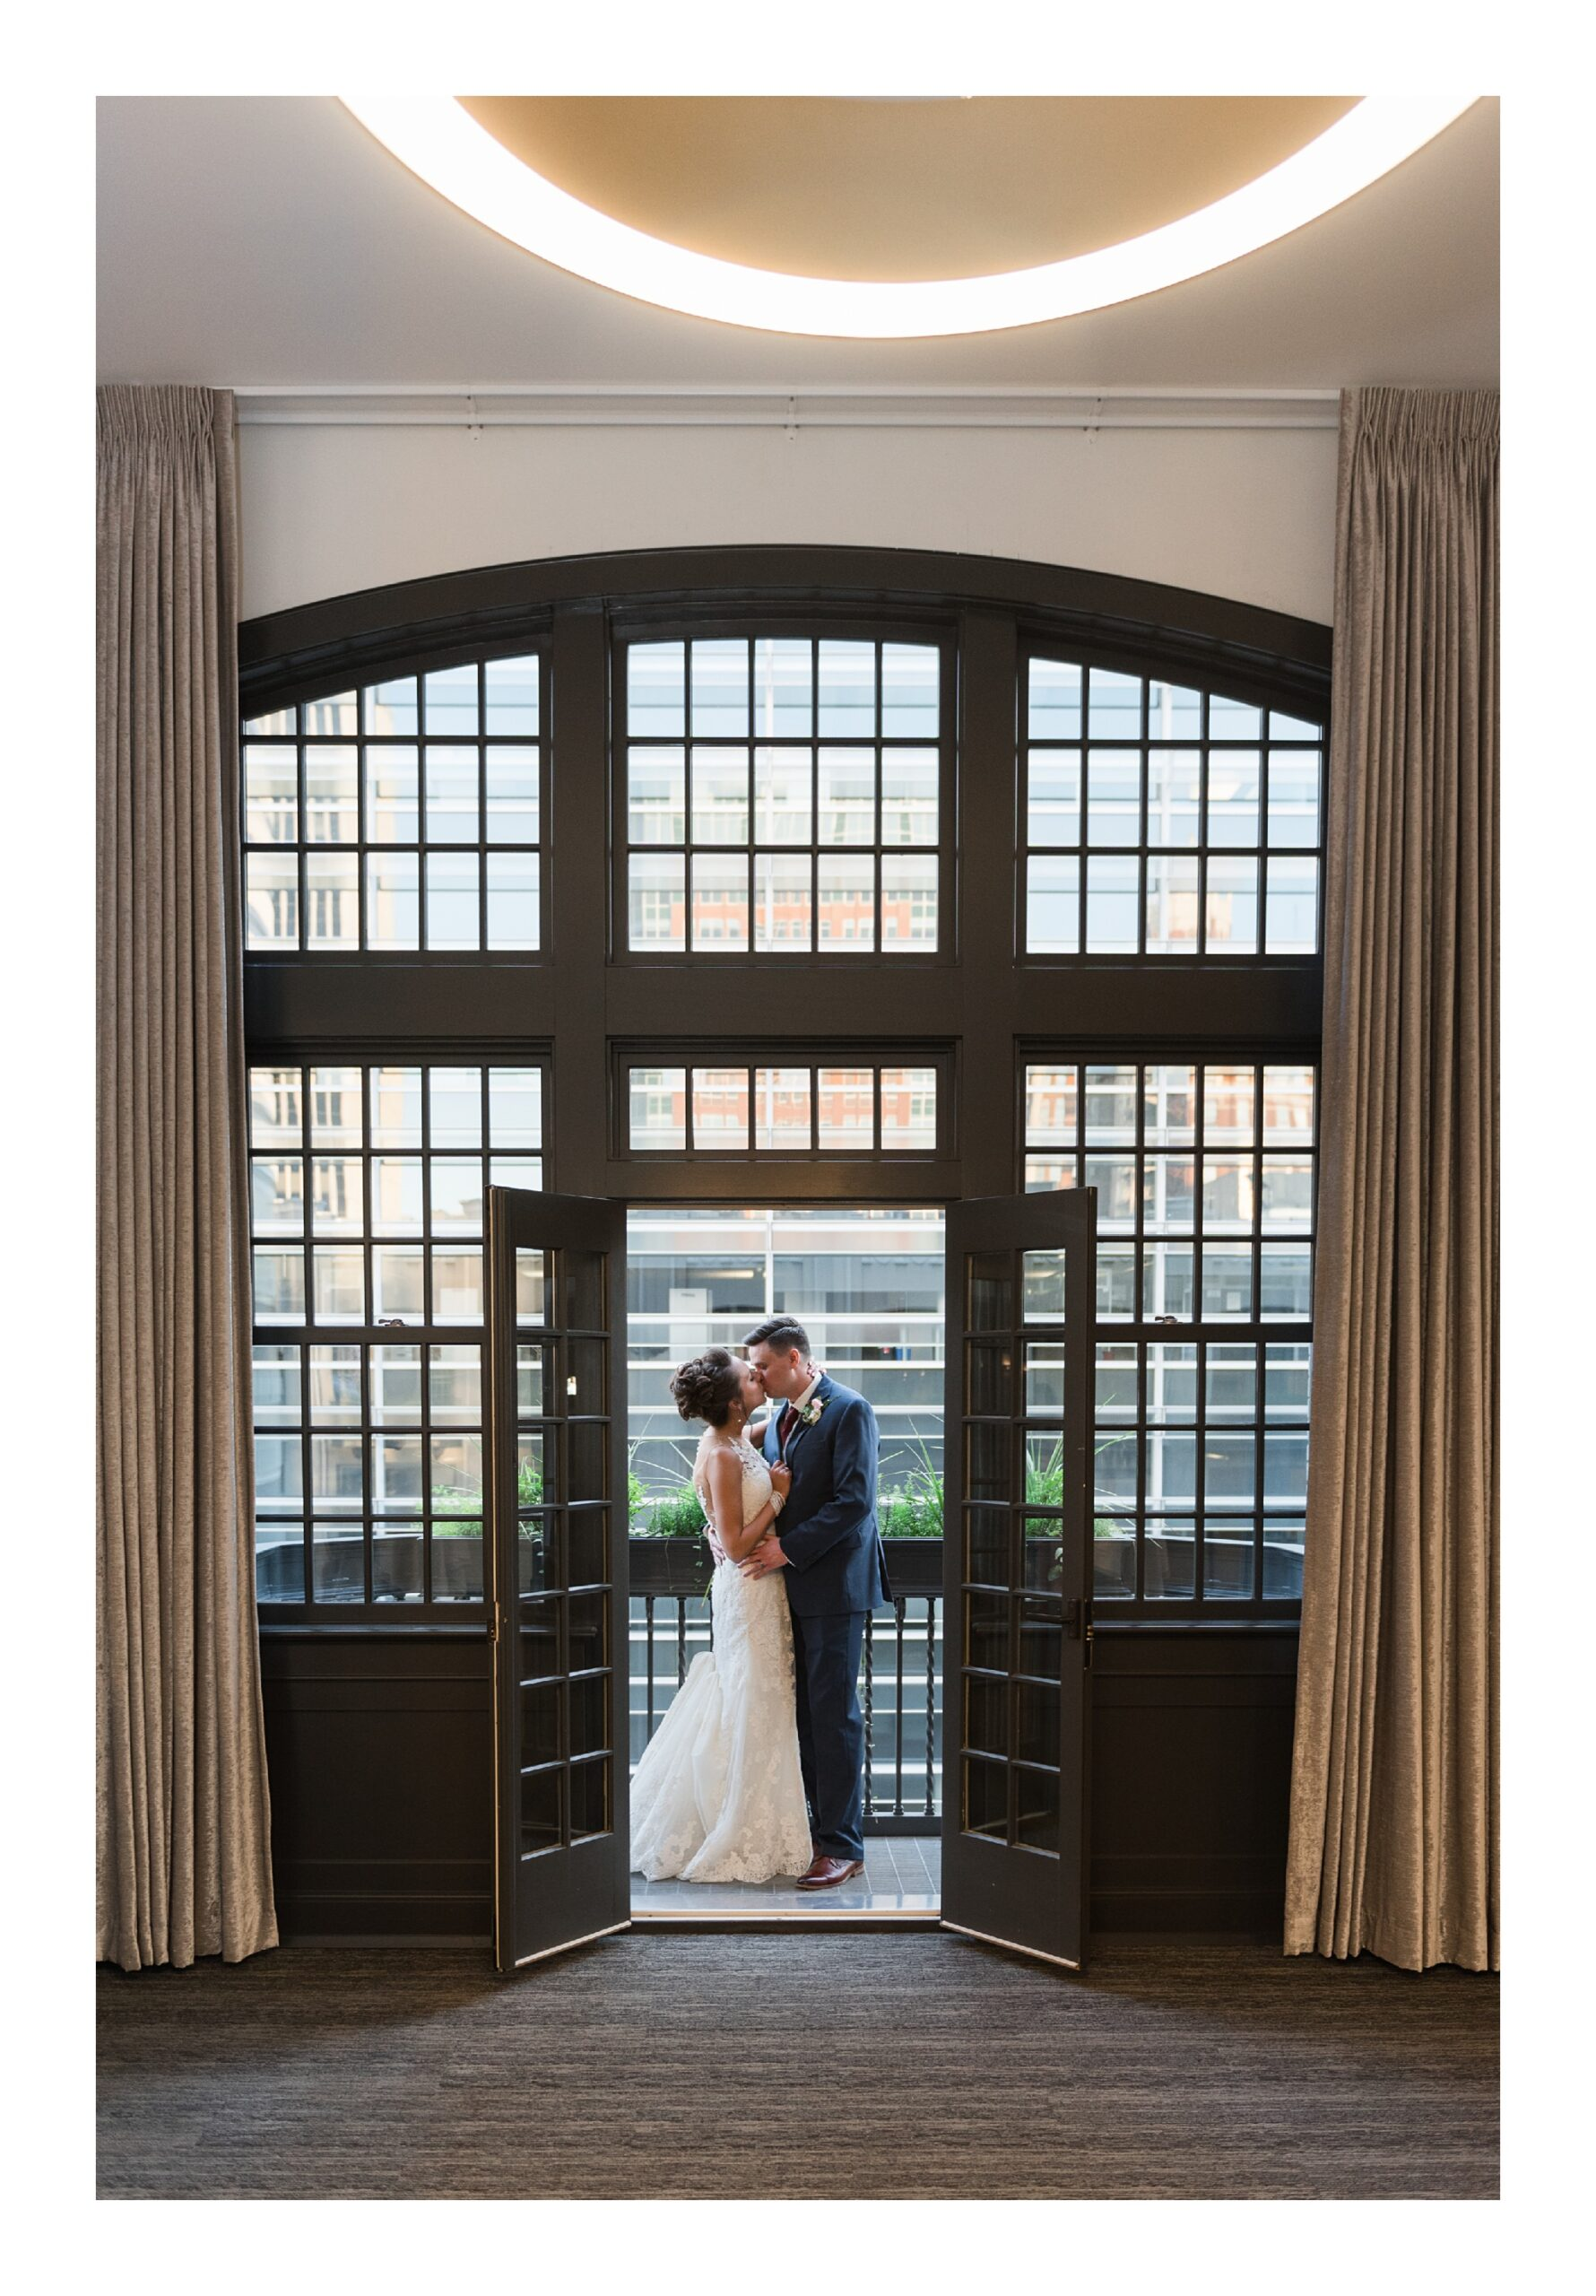 intimate wedding day moments